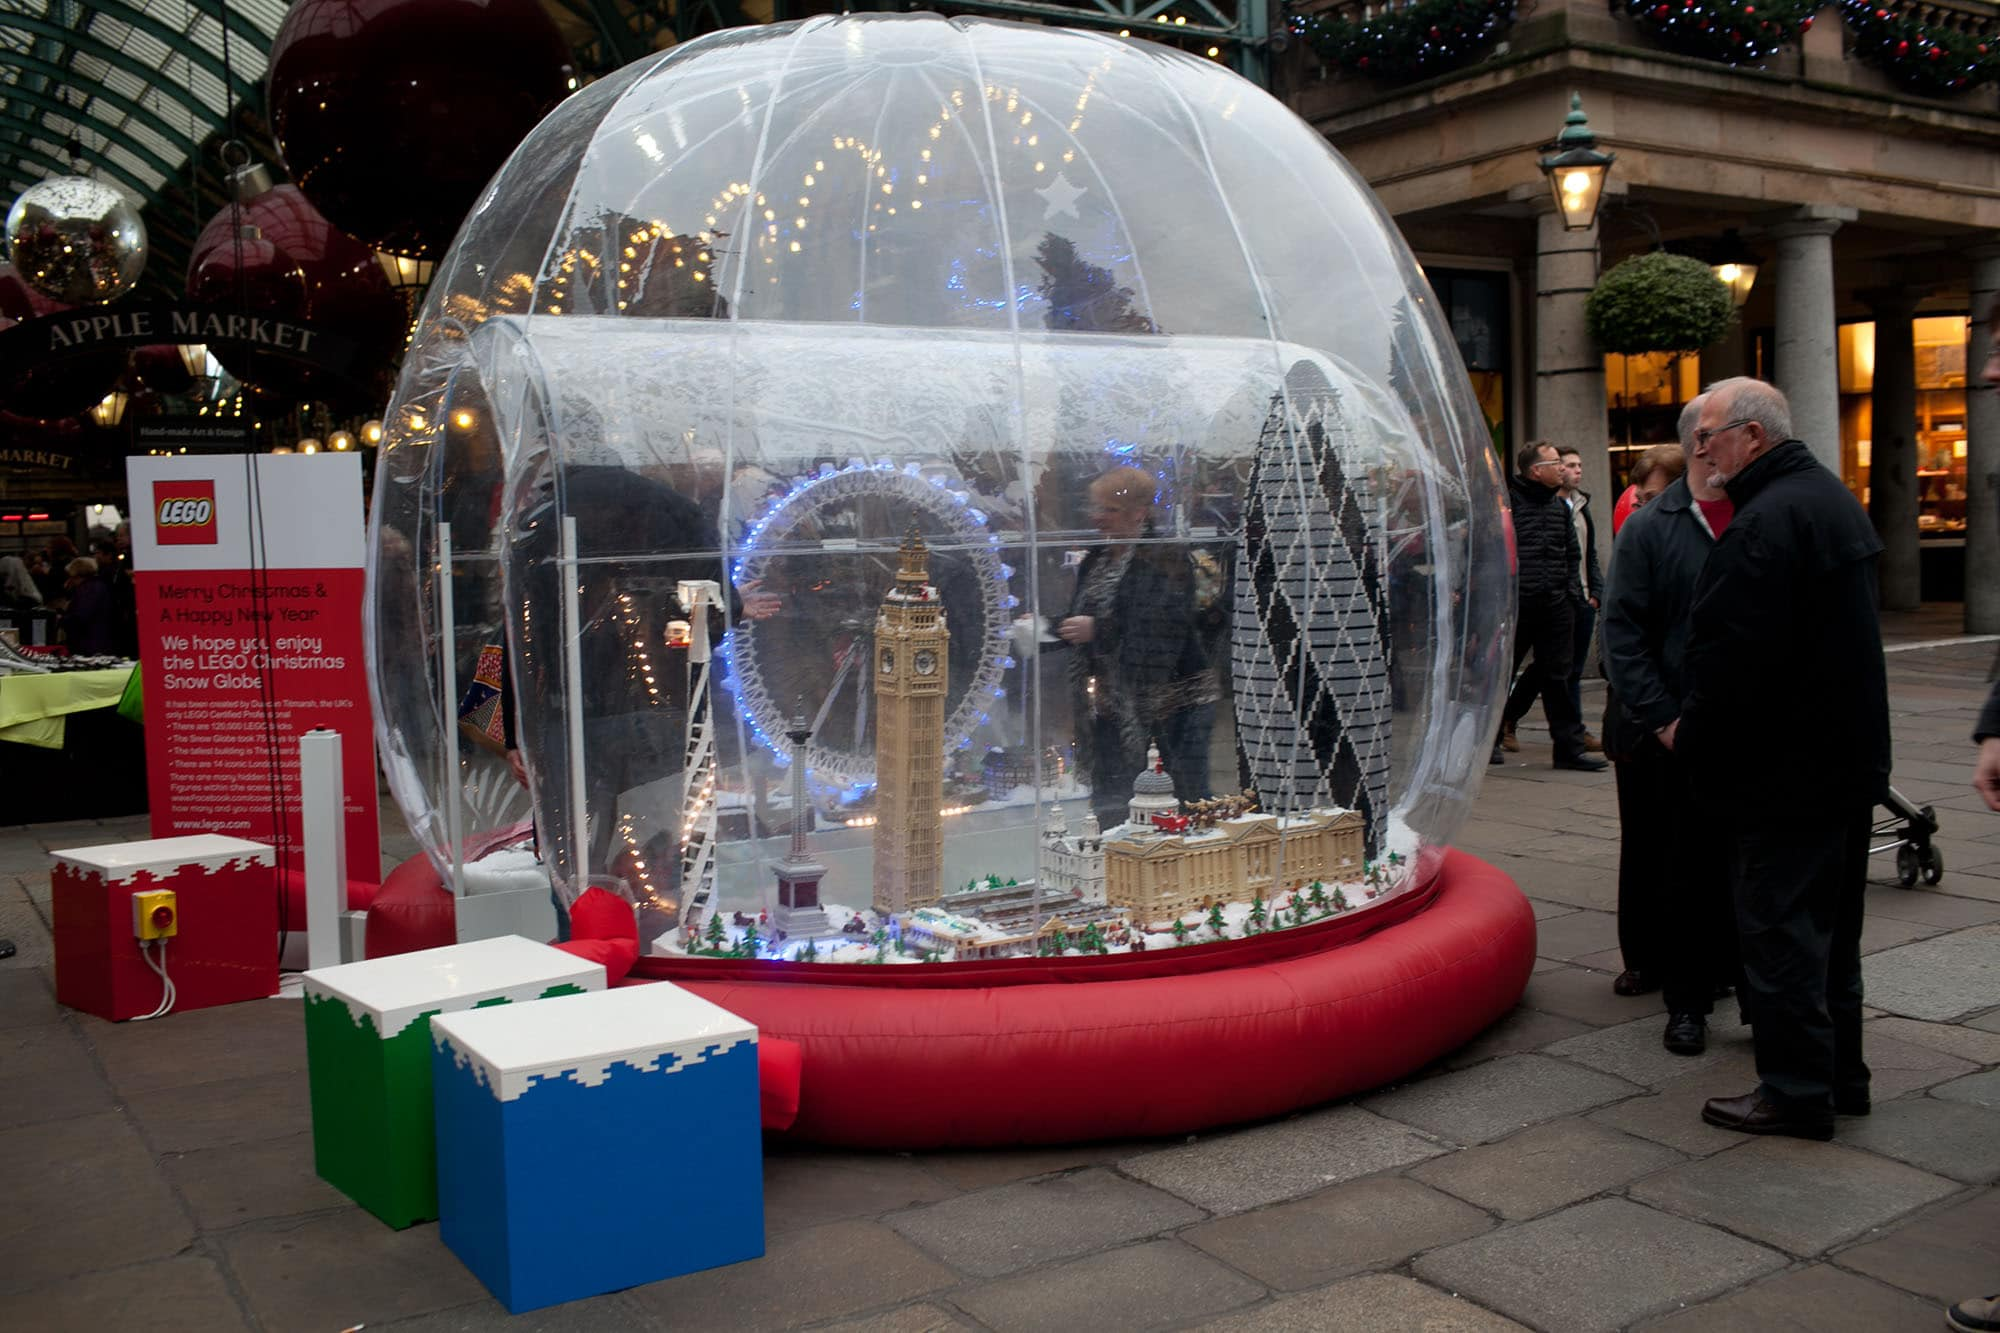 Lego Snow Globe at Covent Garden in London, England